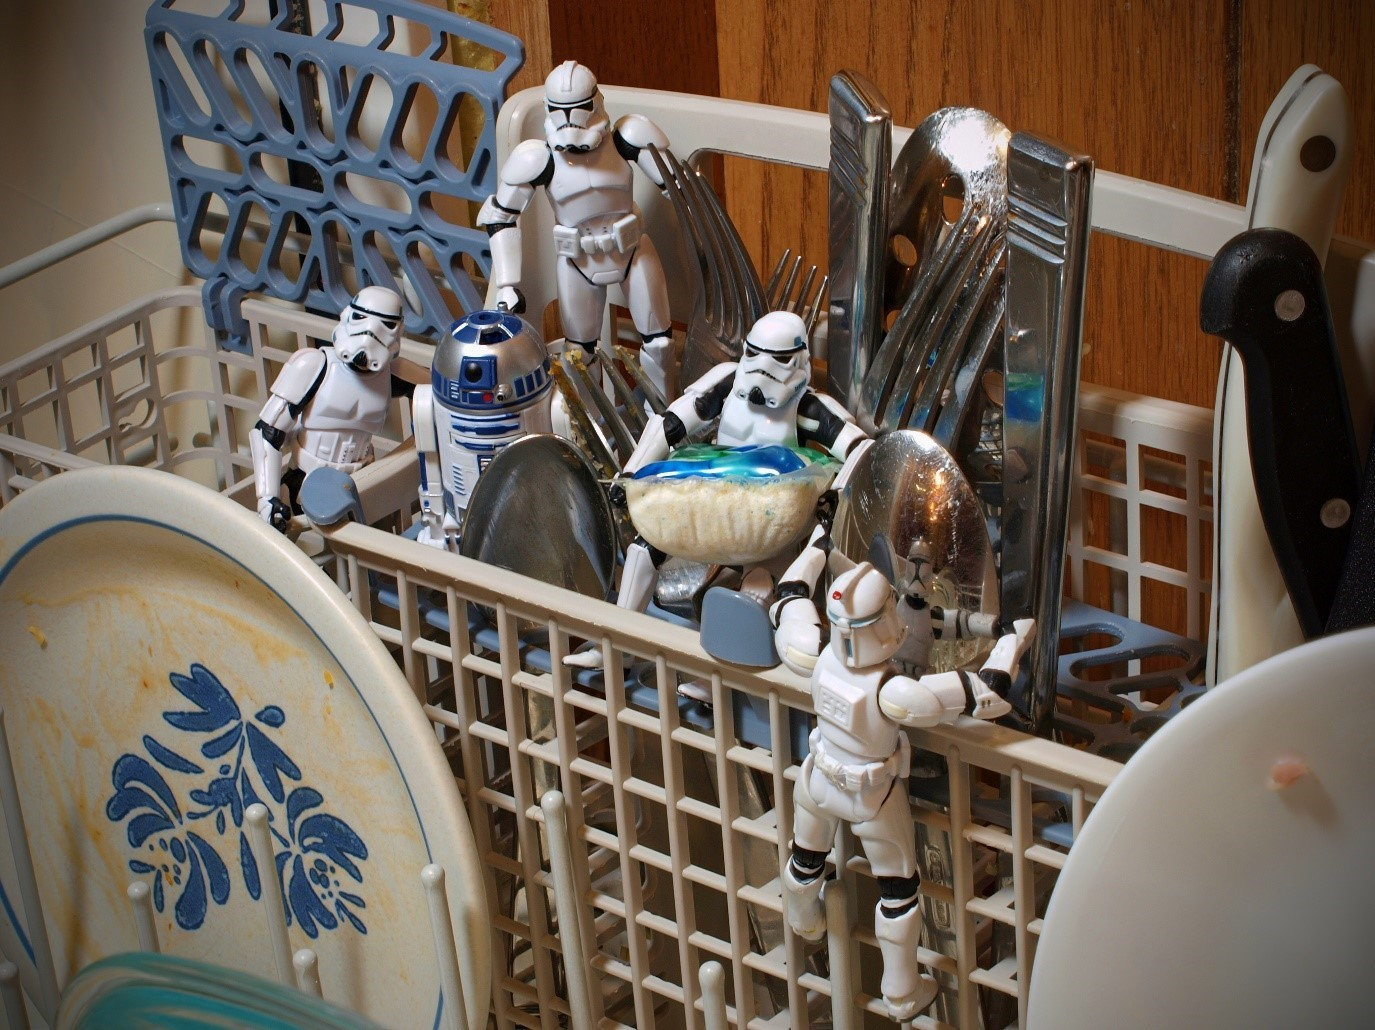 5 Ways to Speed Up Your House Cleaning Despite a Busy Schedule star wars dolls